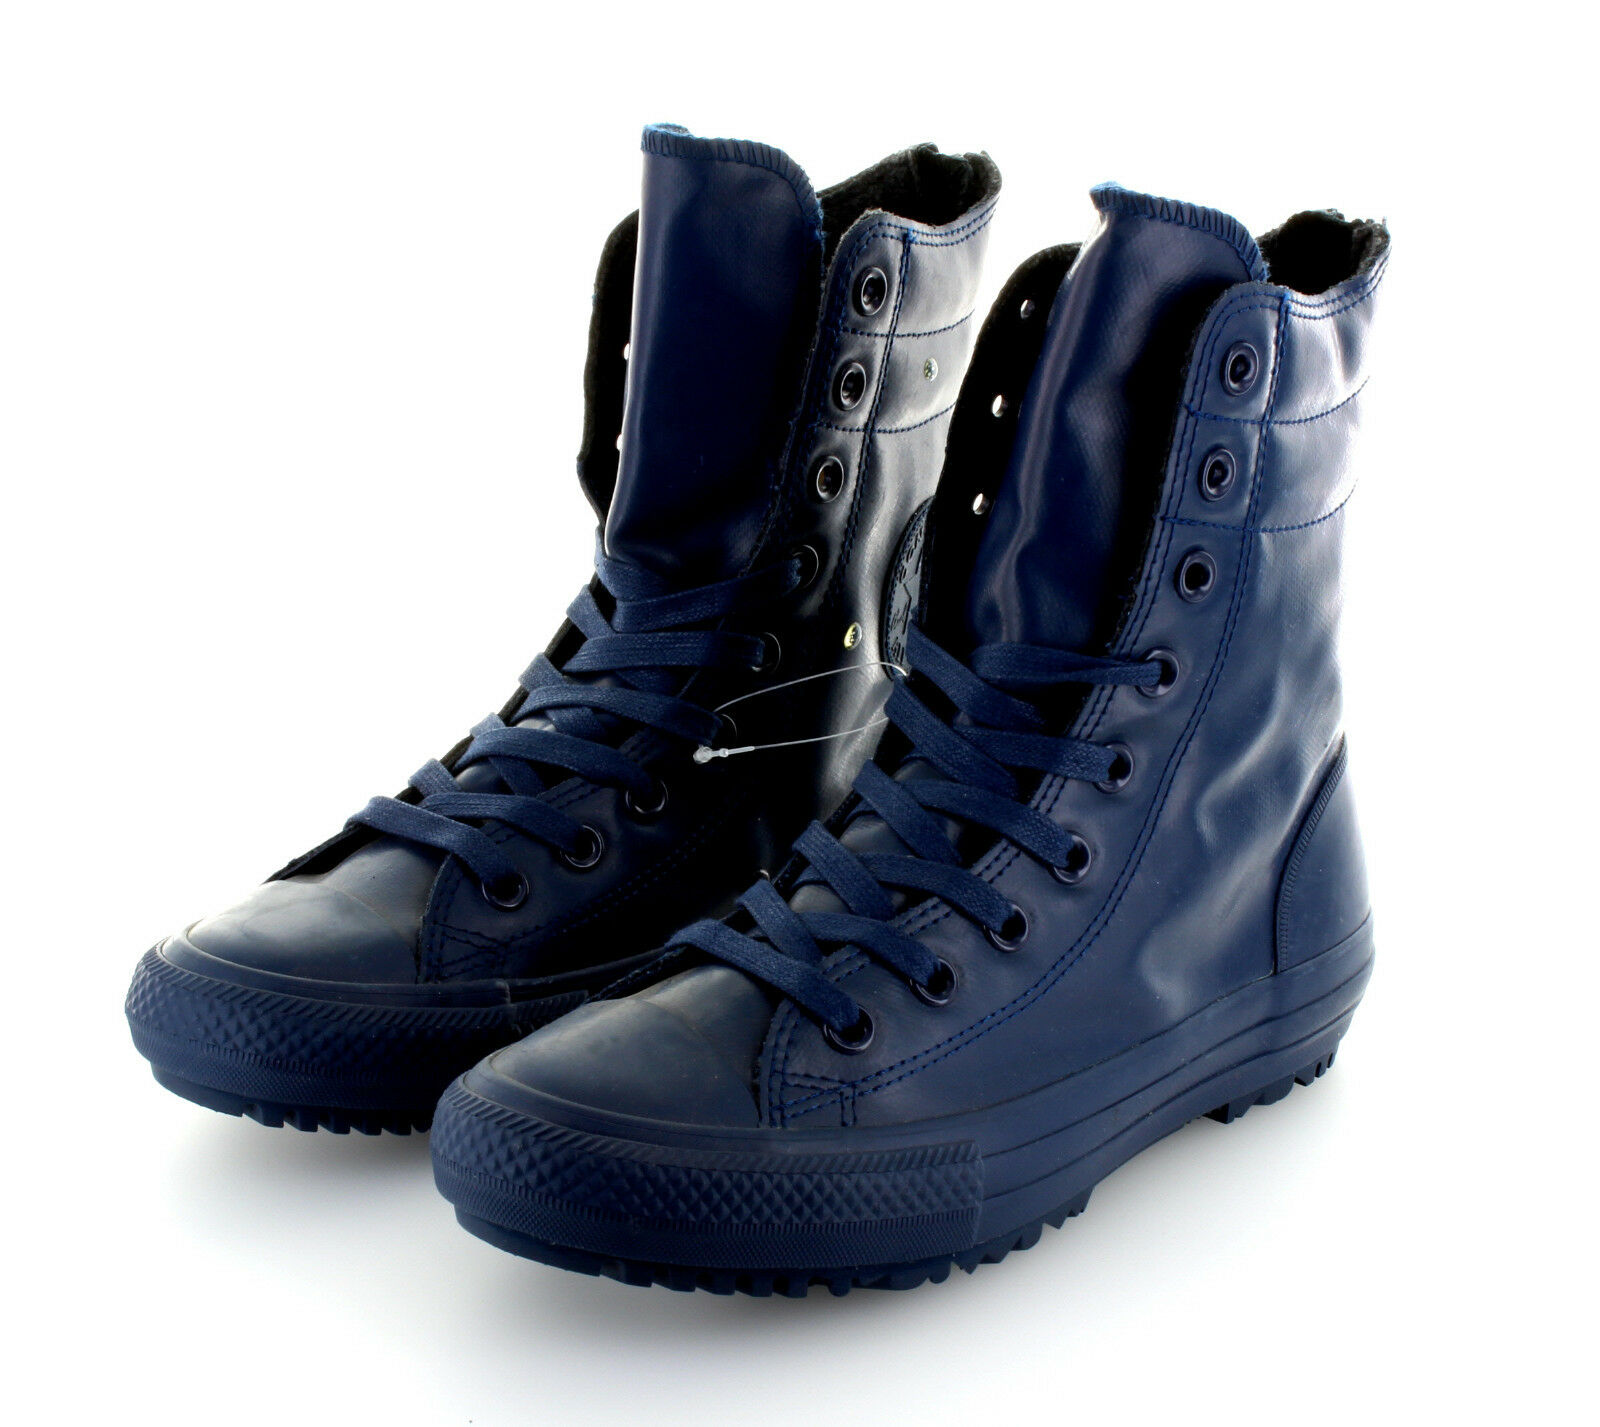 Converse CT AS Hi Rise Boot Rubber Nighttime Navy Gummi Stiefel Gr. 37,5   38,5